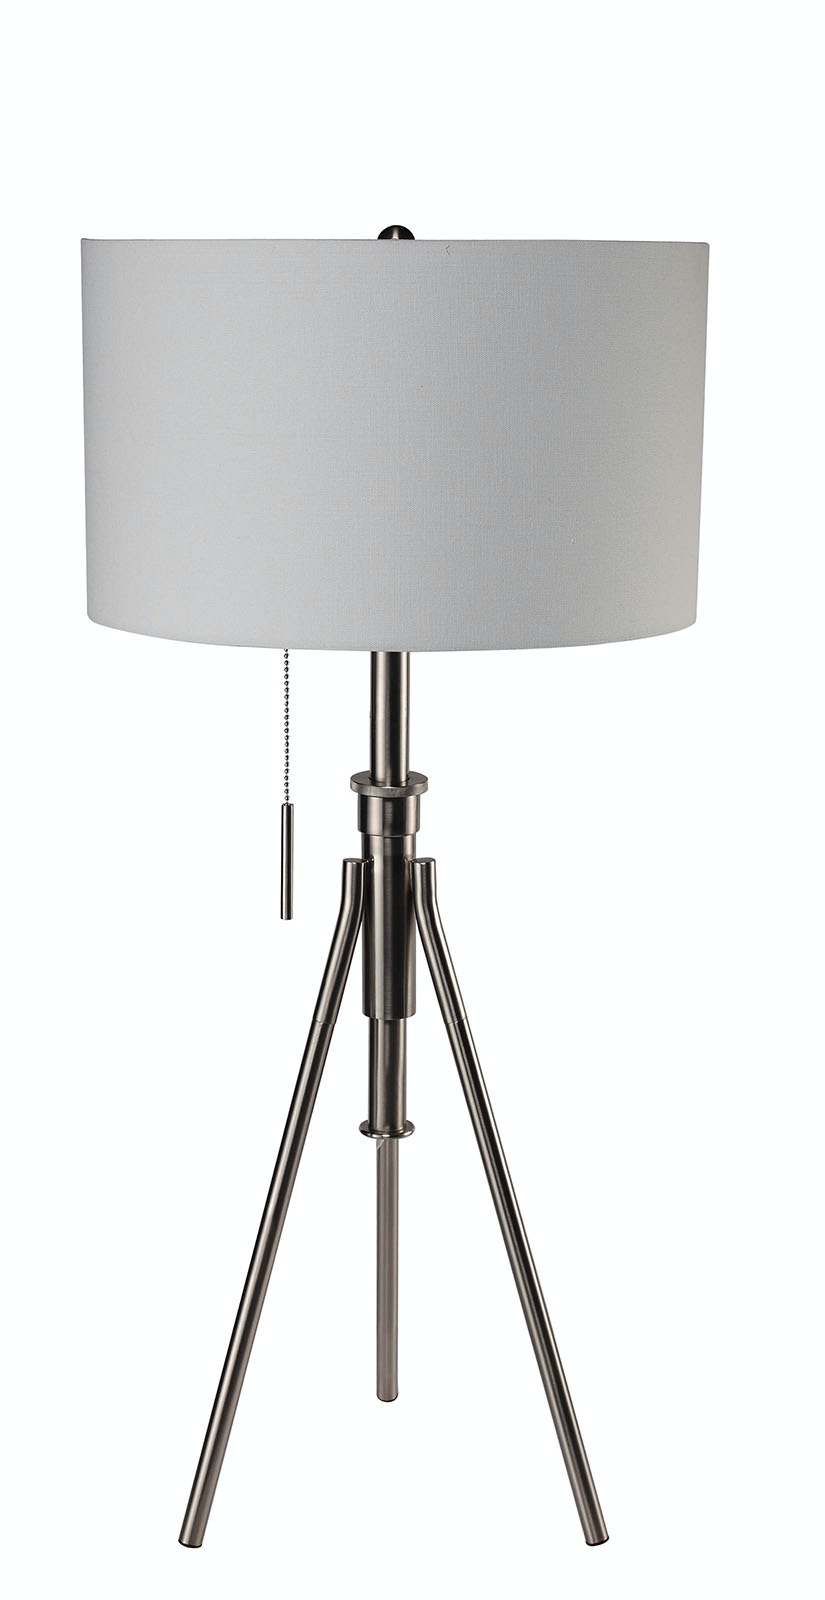 Furniture of America Table L& L731171T-SV  sc 1 st  The Furniture Mall & Bedroom Lighting - The Furniture Mall - Duluth Doraville ... azcodes.com